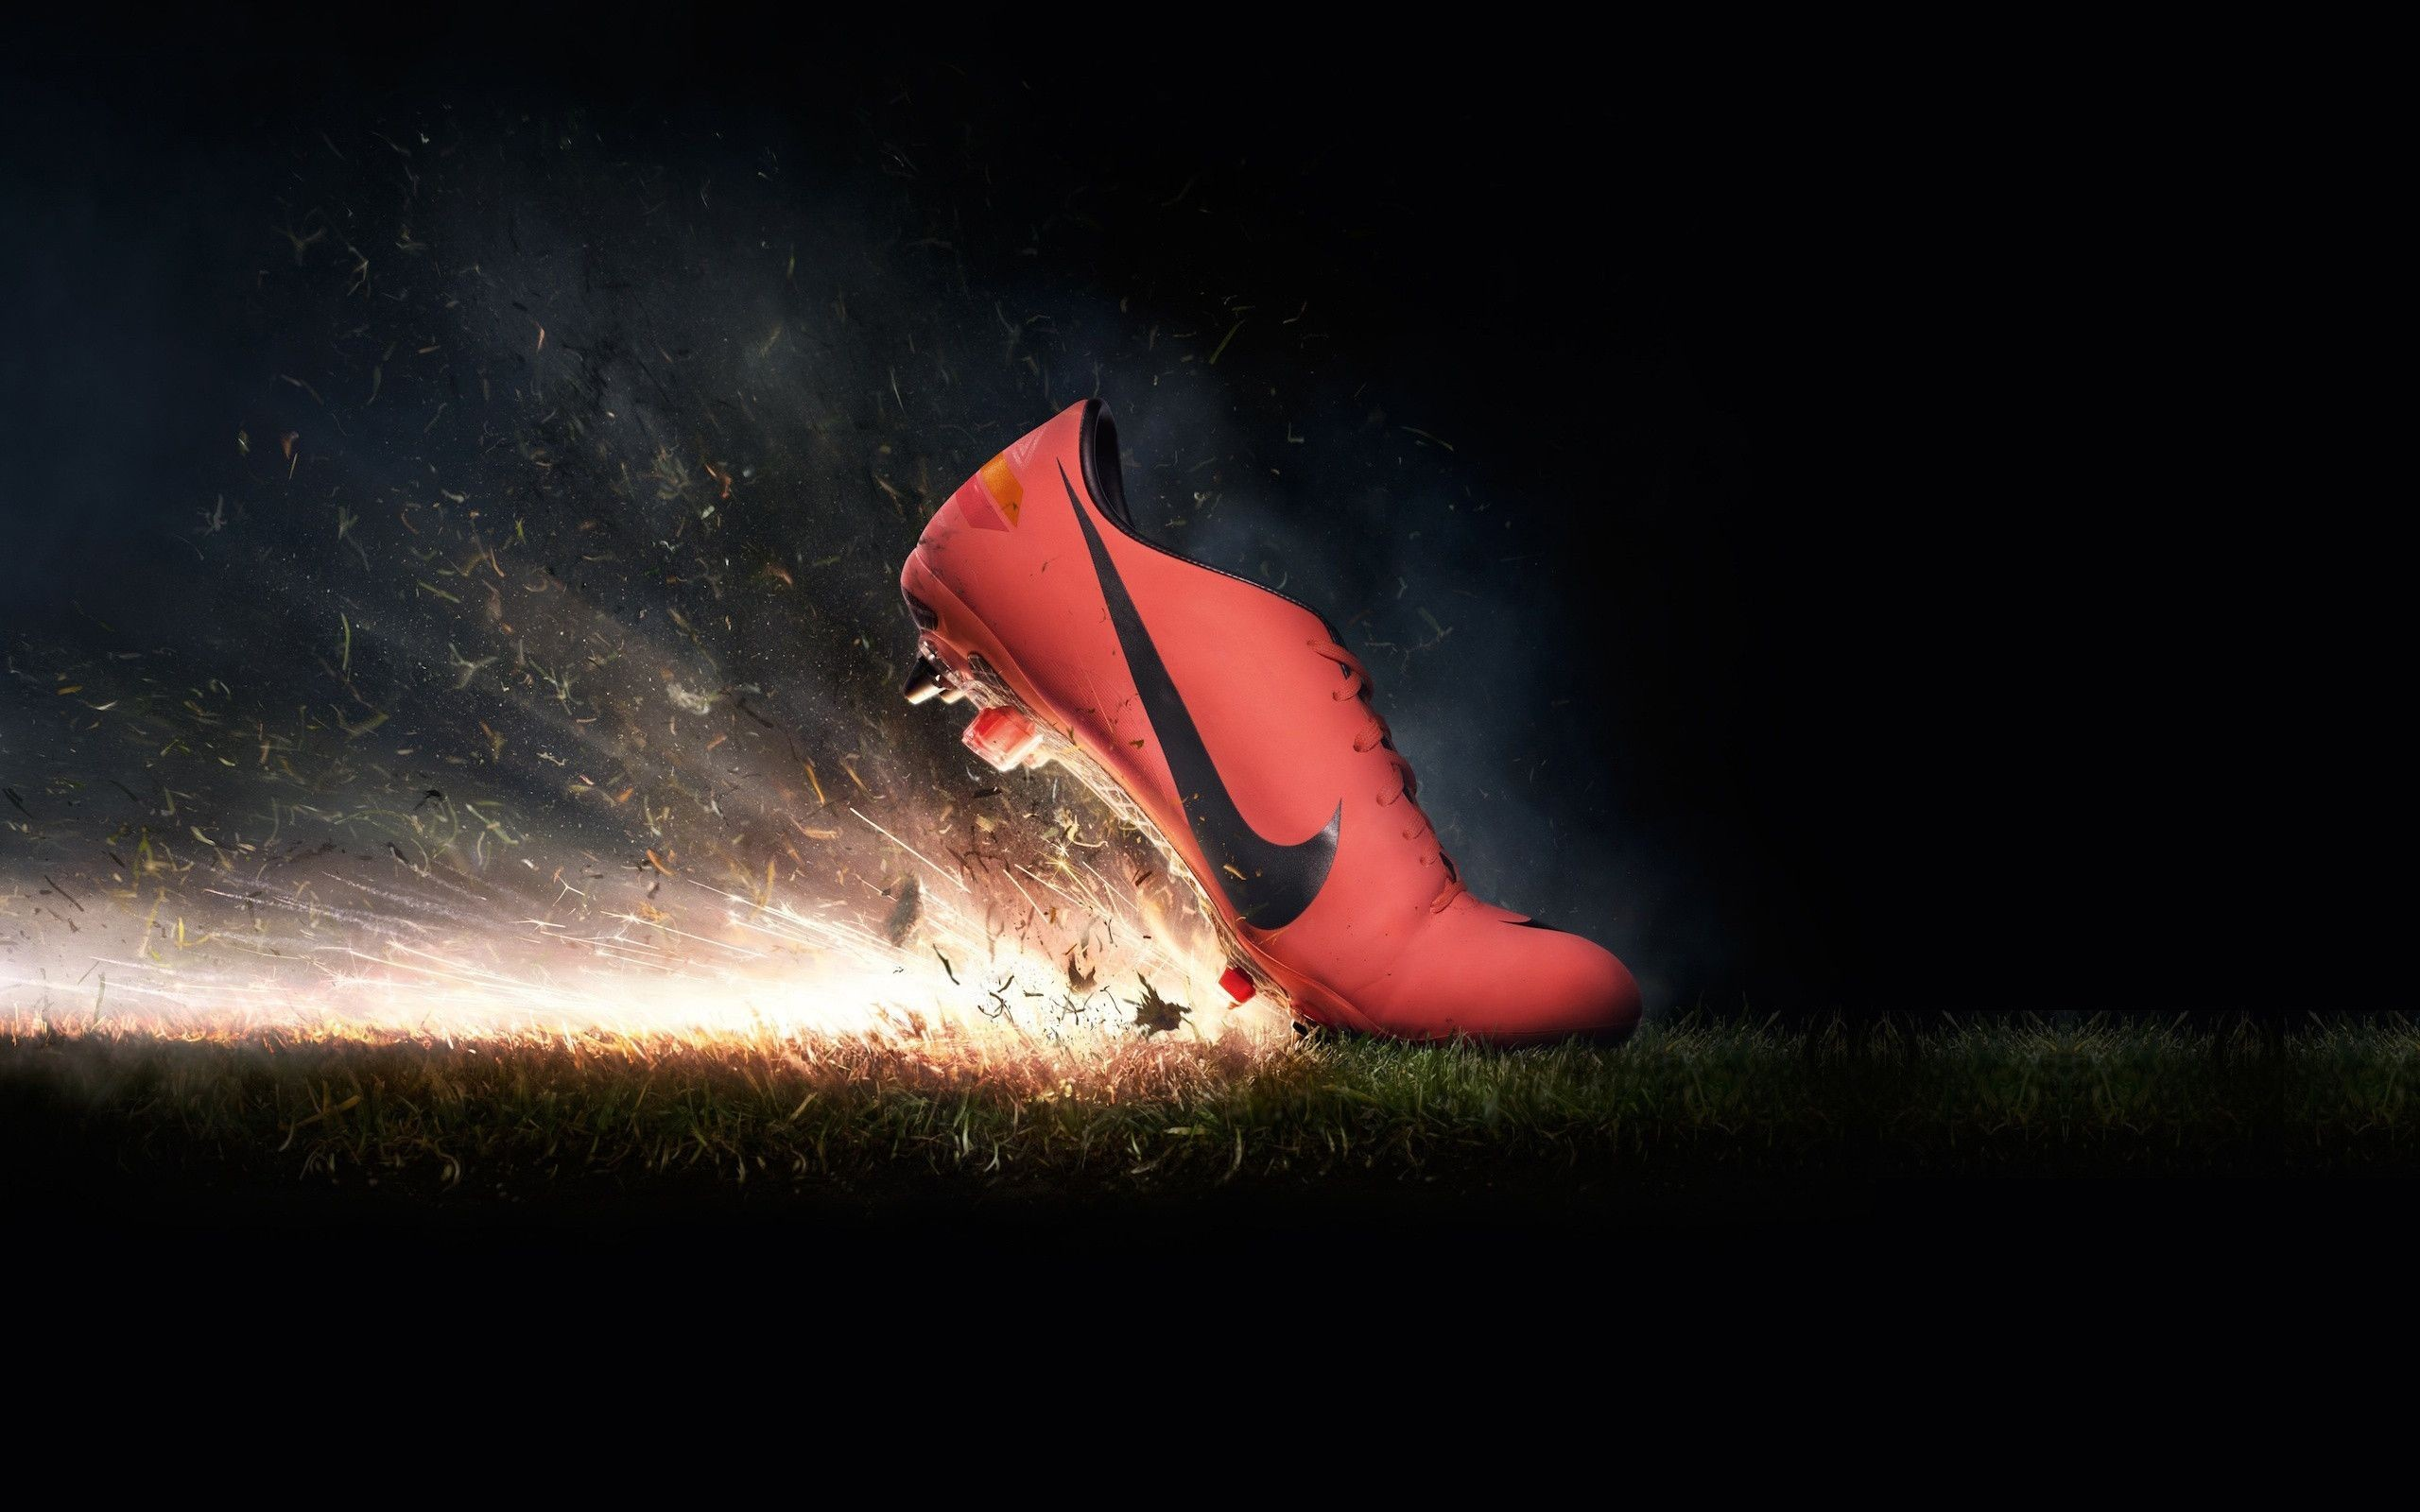 2560x1600 - Soccer Wallpapers 15